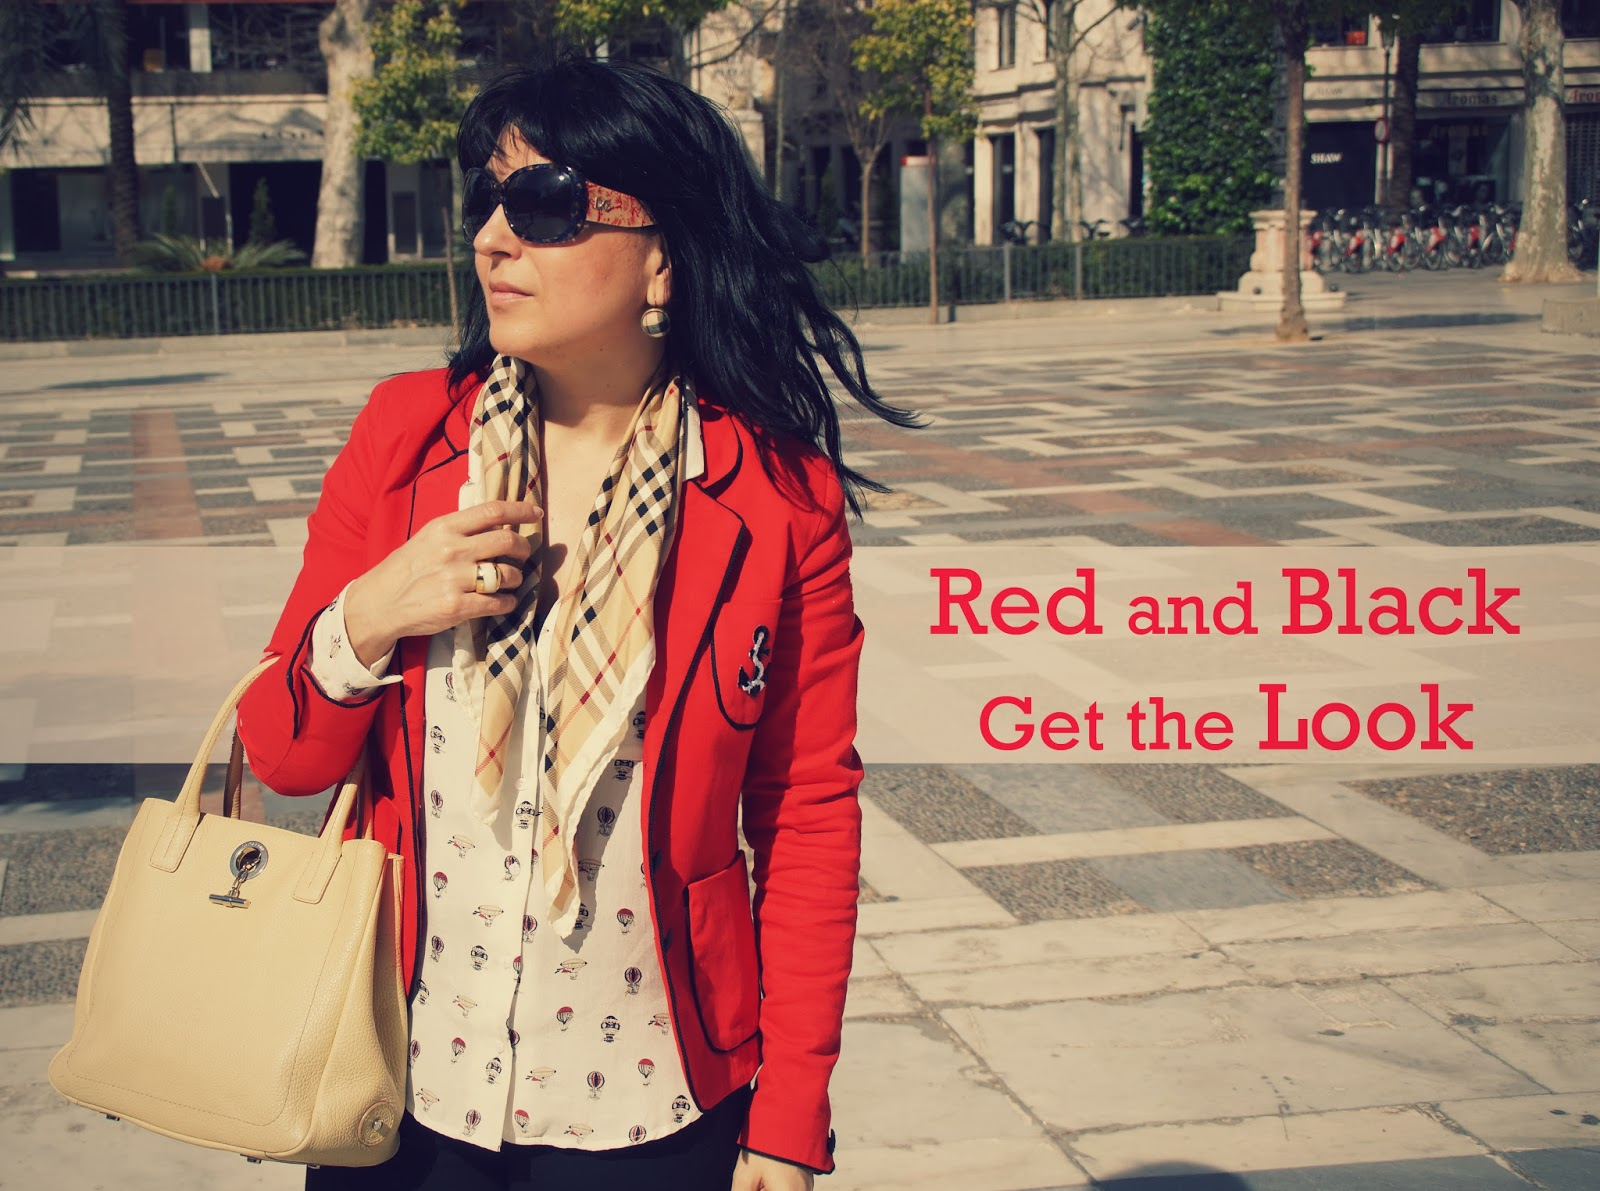 red+and+black+get+the+look